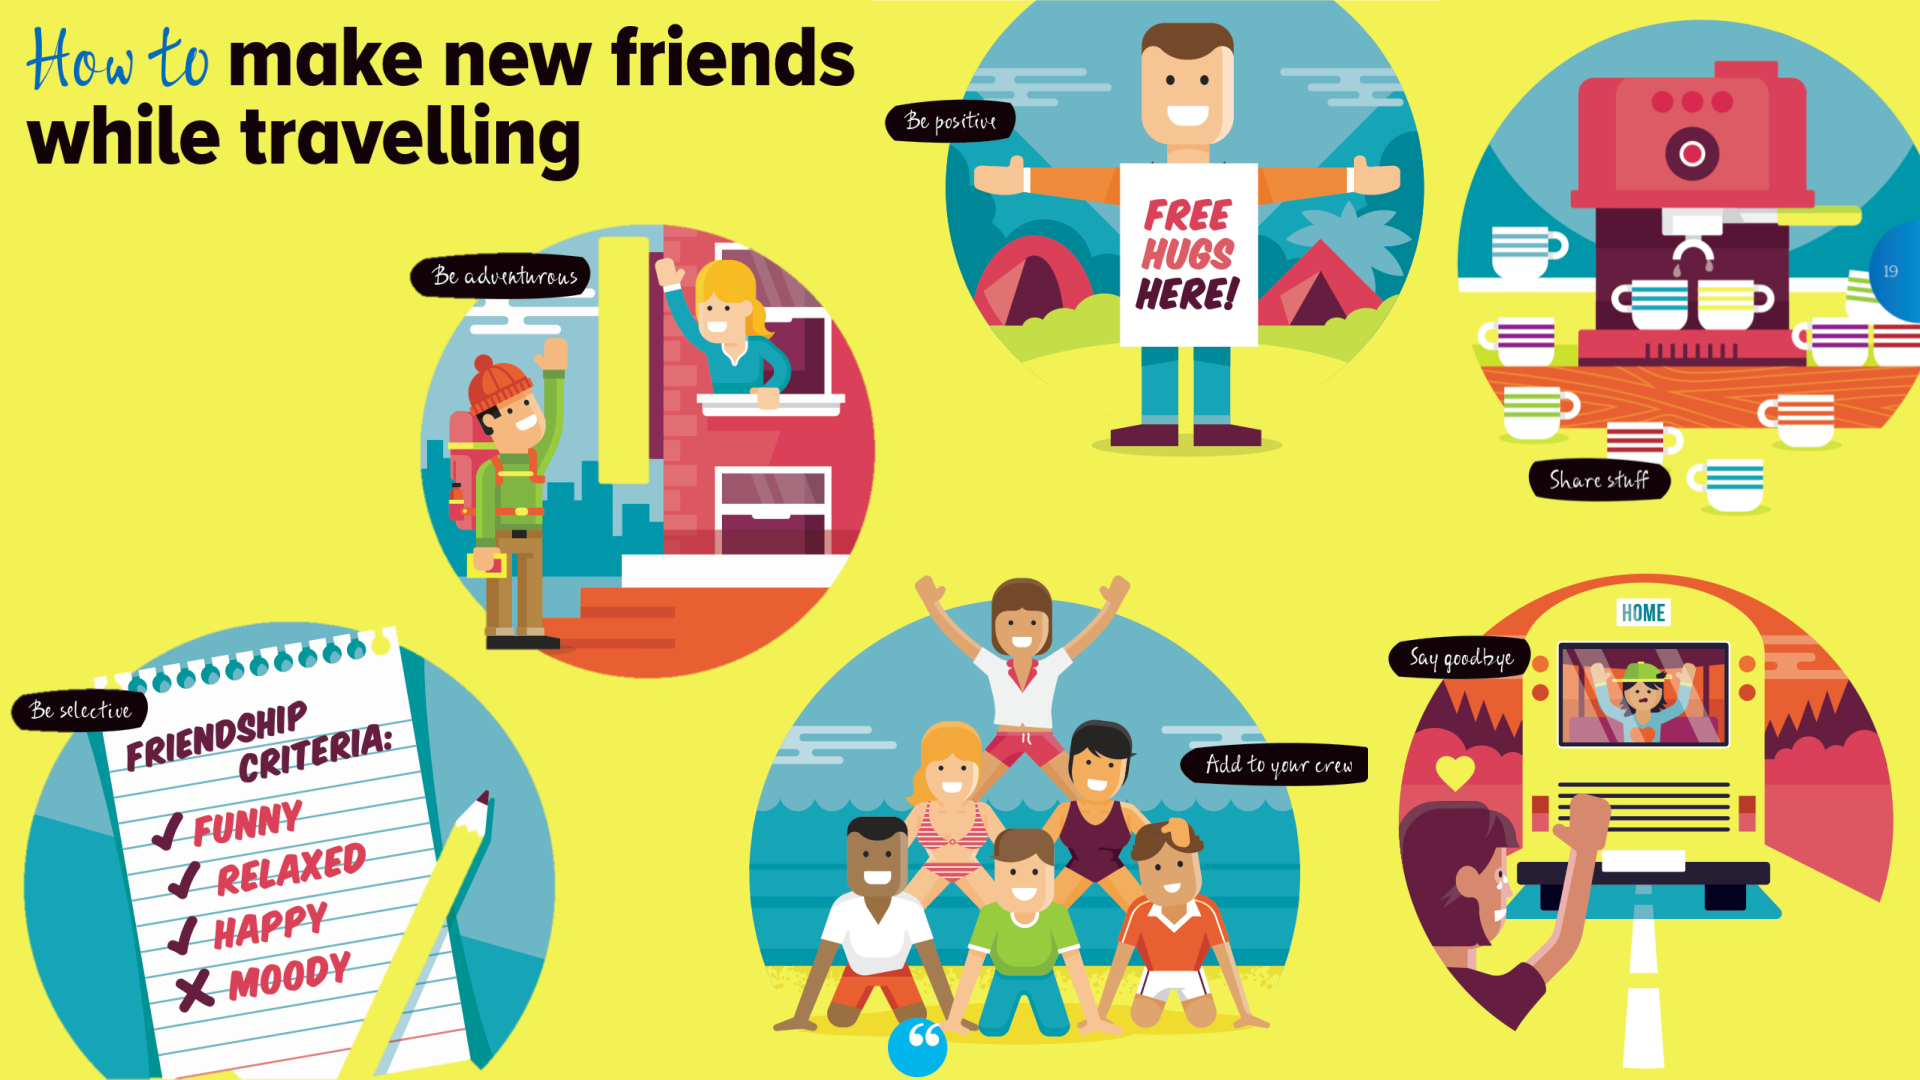 How to make new friends while travelling